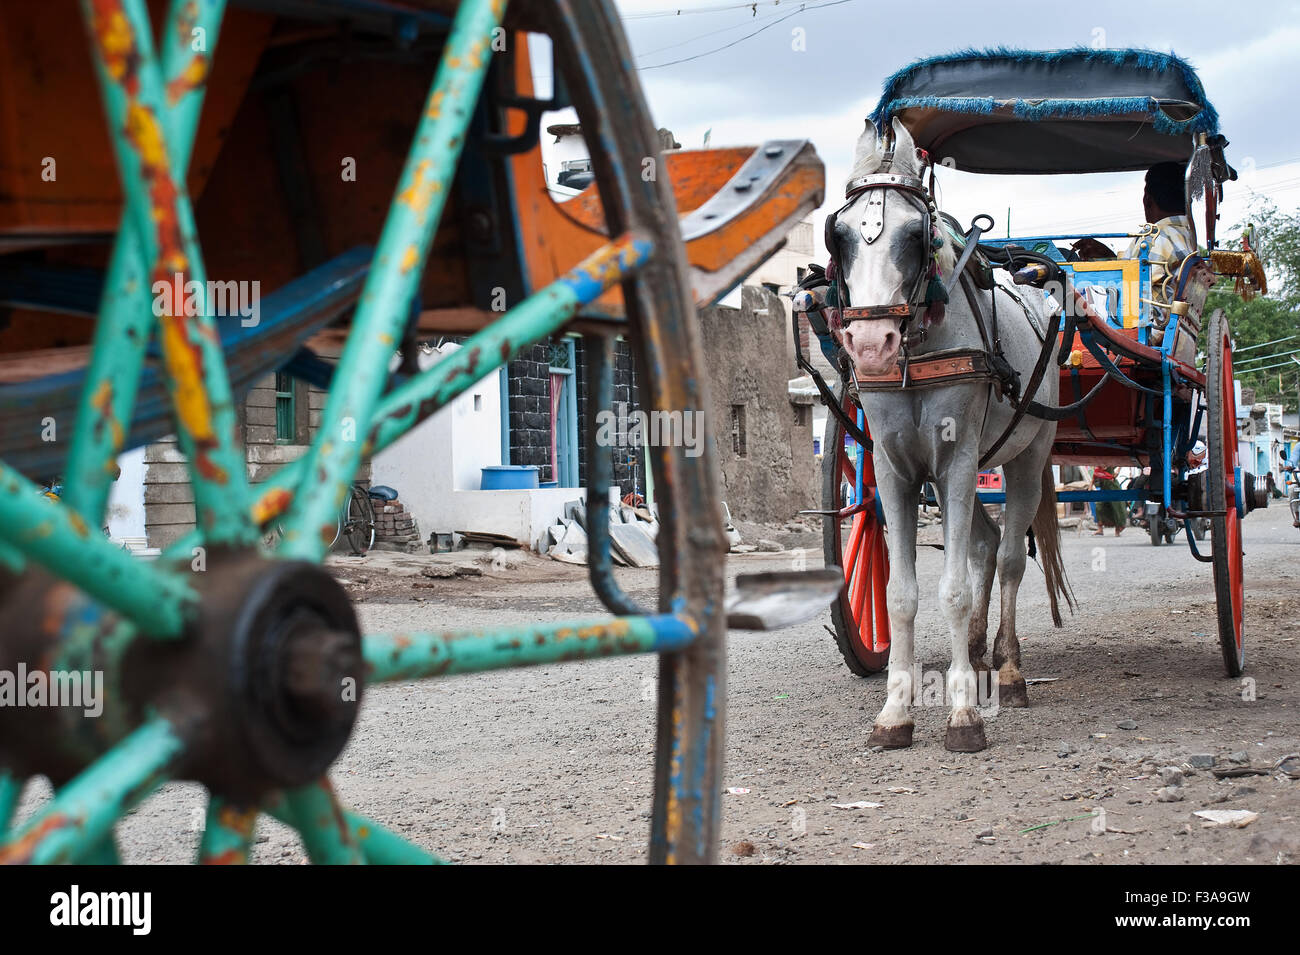 Horse drawn cart ('tonga' in hindi). In the foreground, the wheel of another horse drawn cart is visible - Stock Image